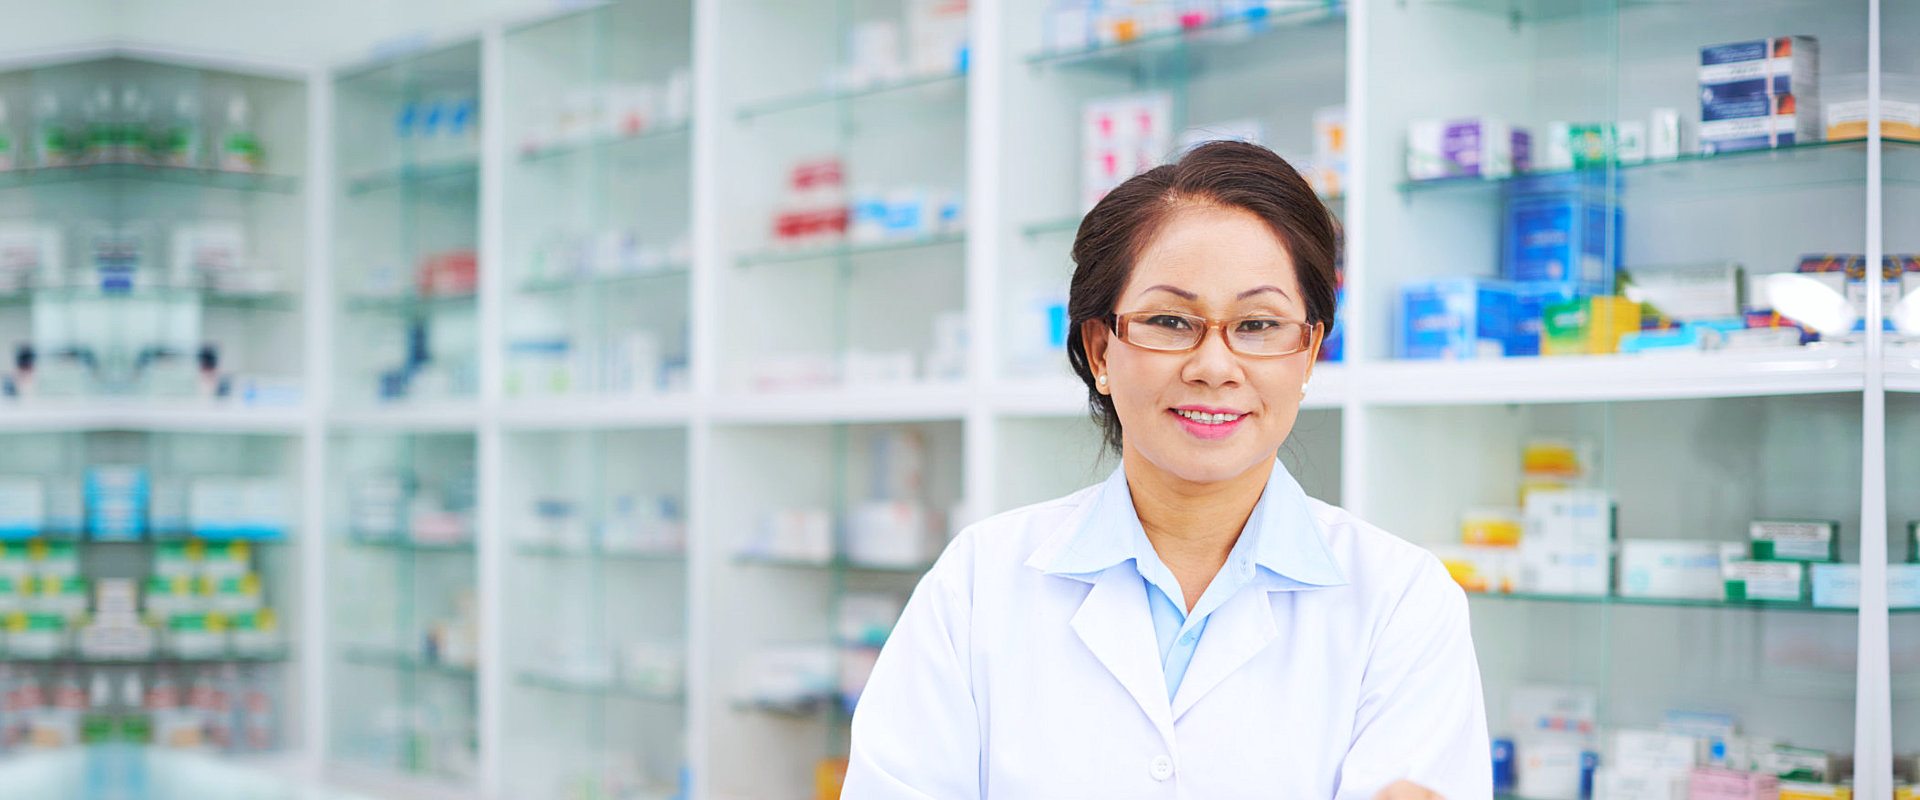 pharmacist showing her genuine smile